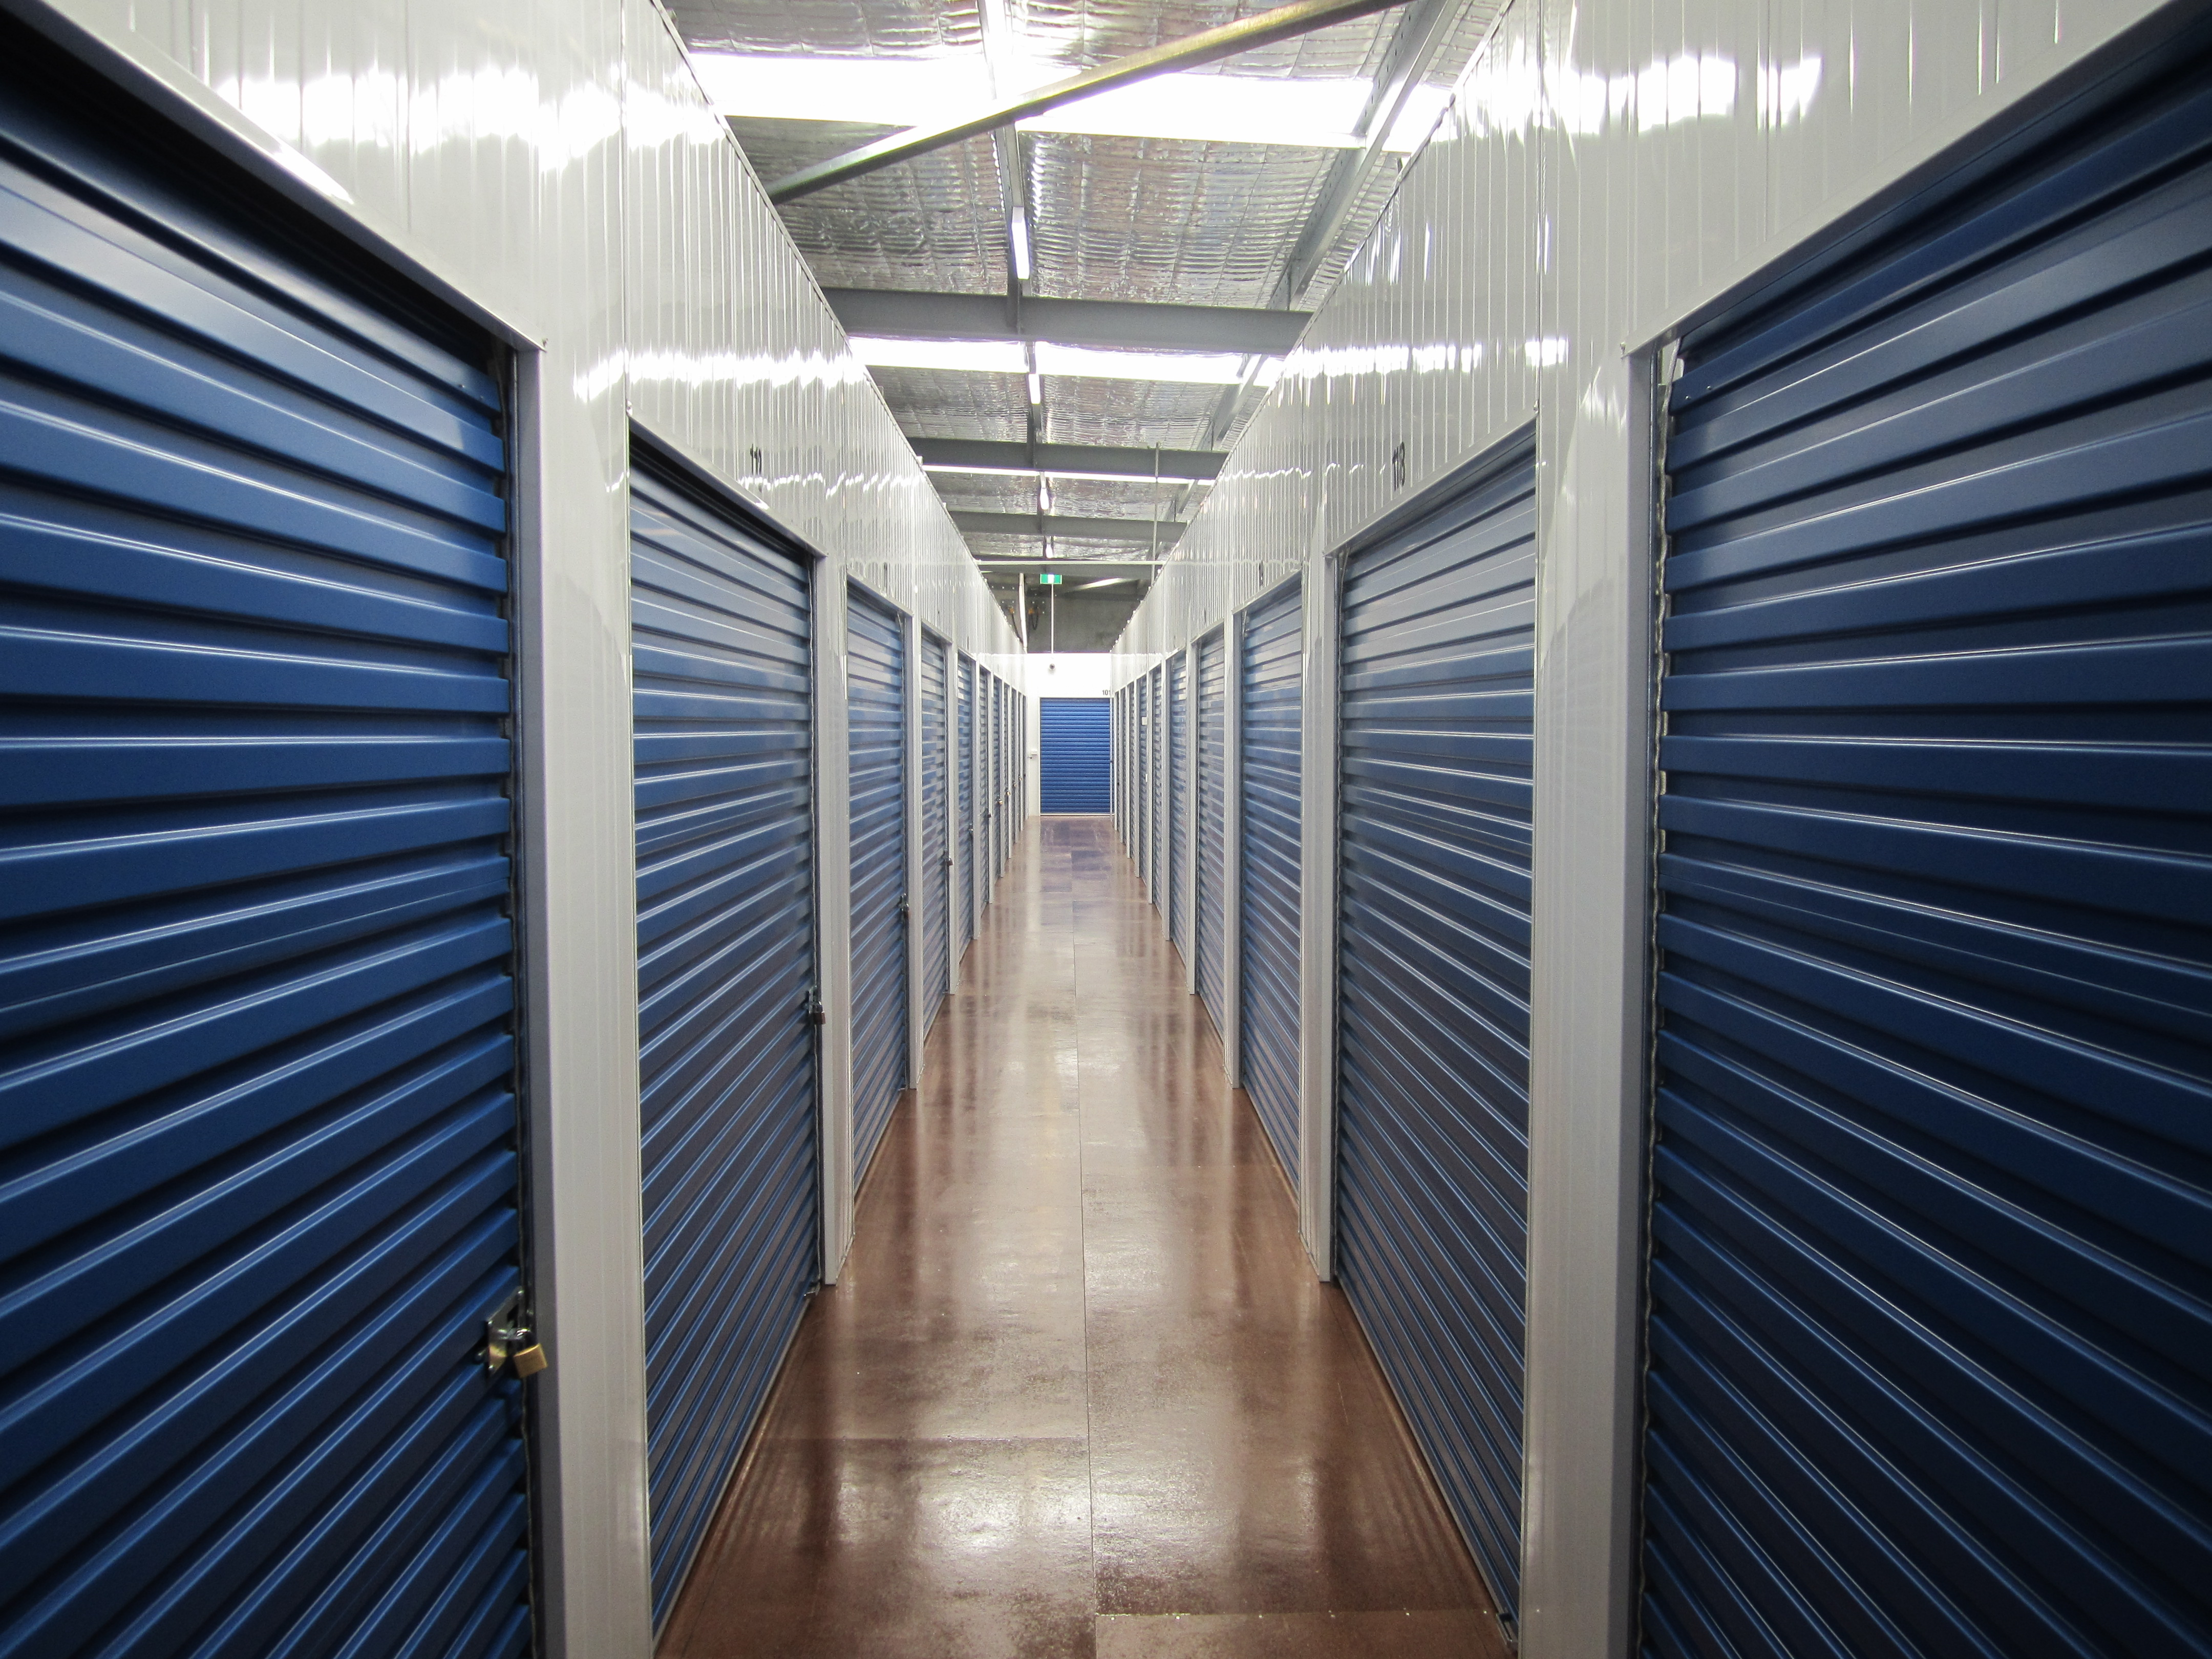 Building conversions - self storage builders Australia - RegisBuilt